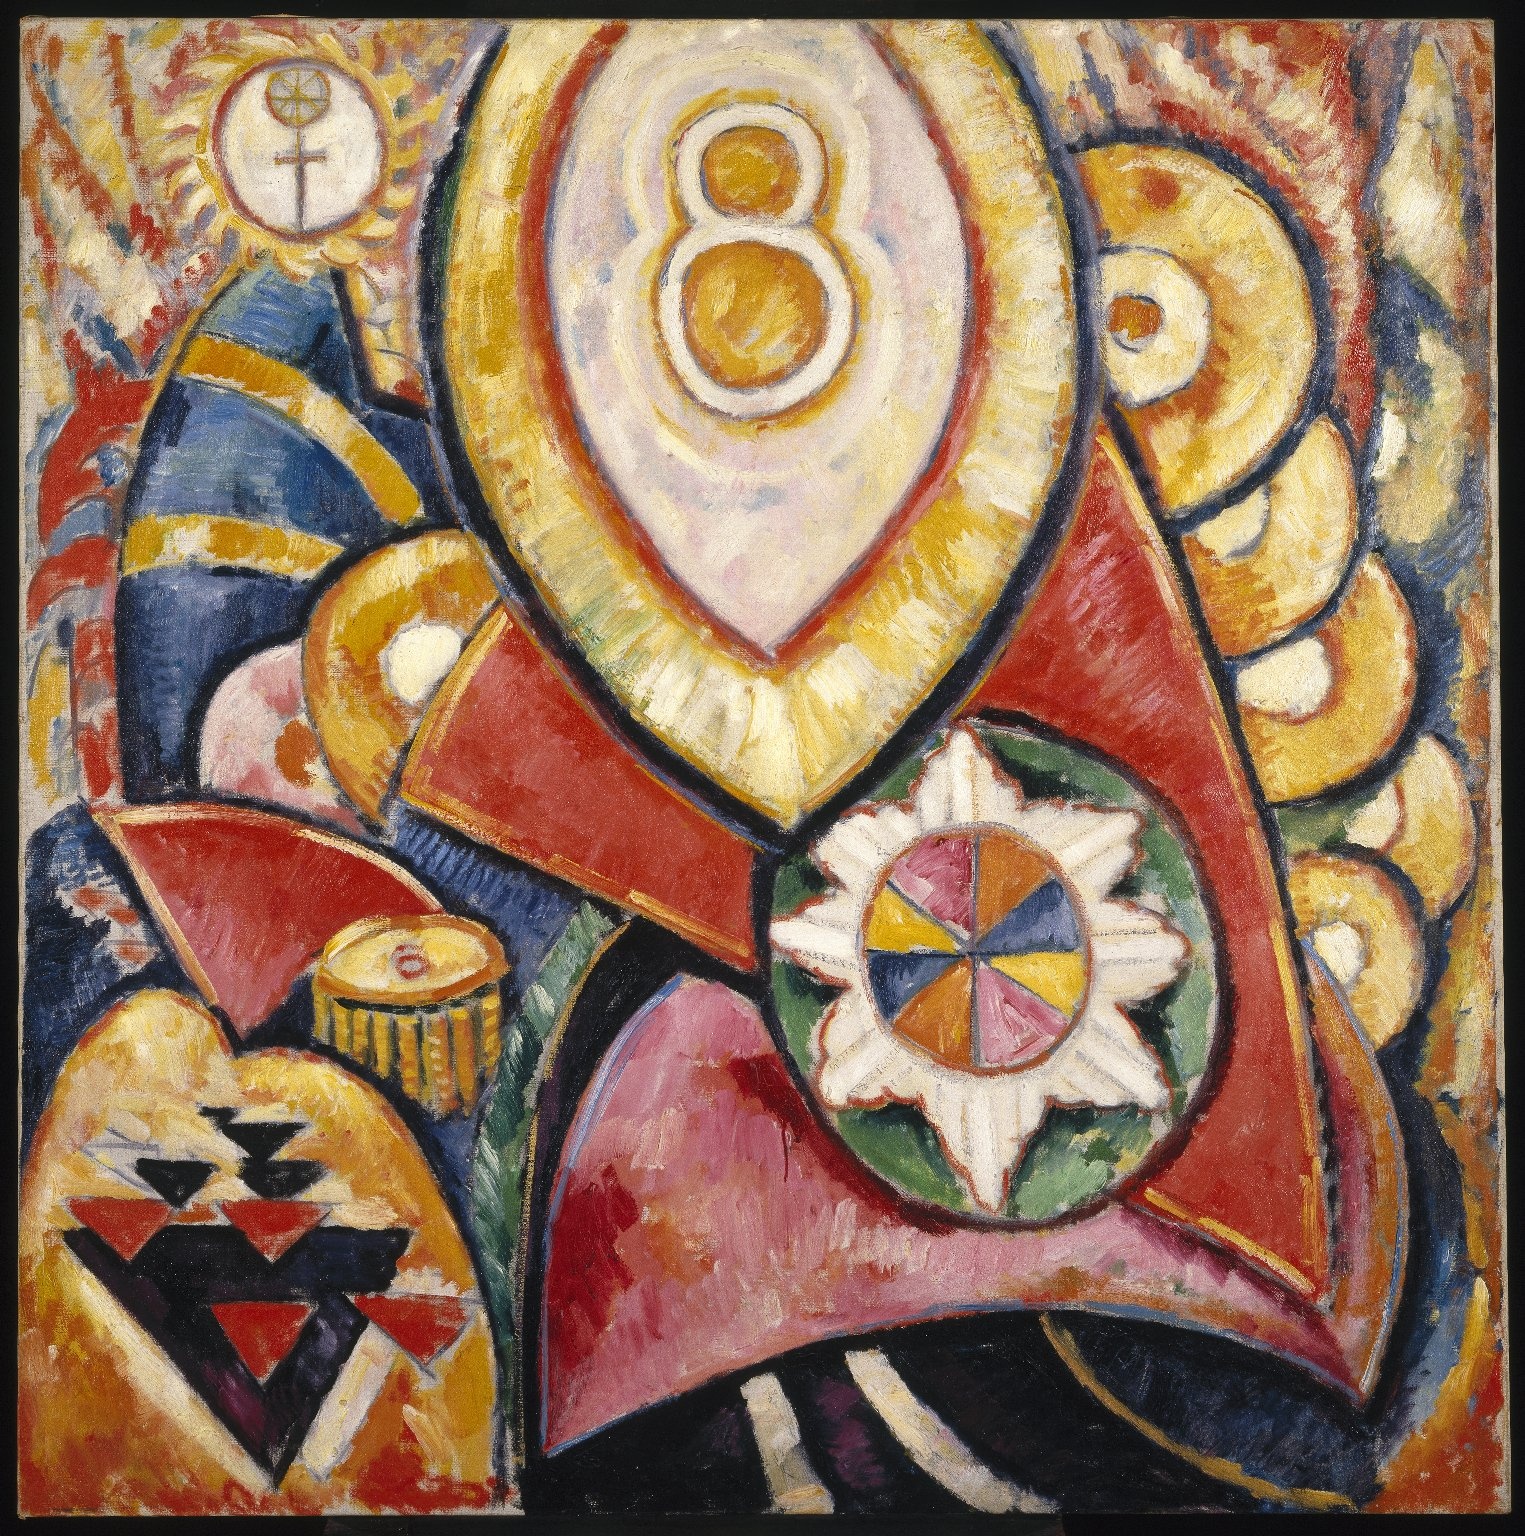 Berlin Series No. 48, 1913 — Marsden Hartley